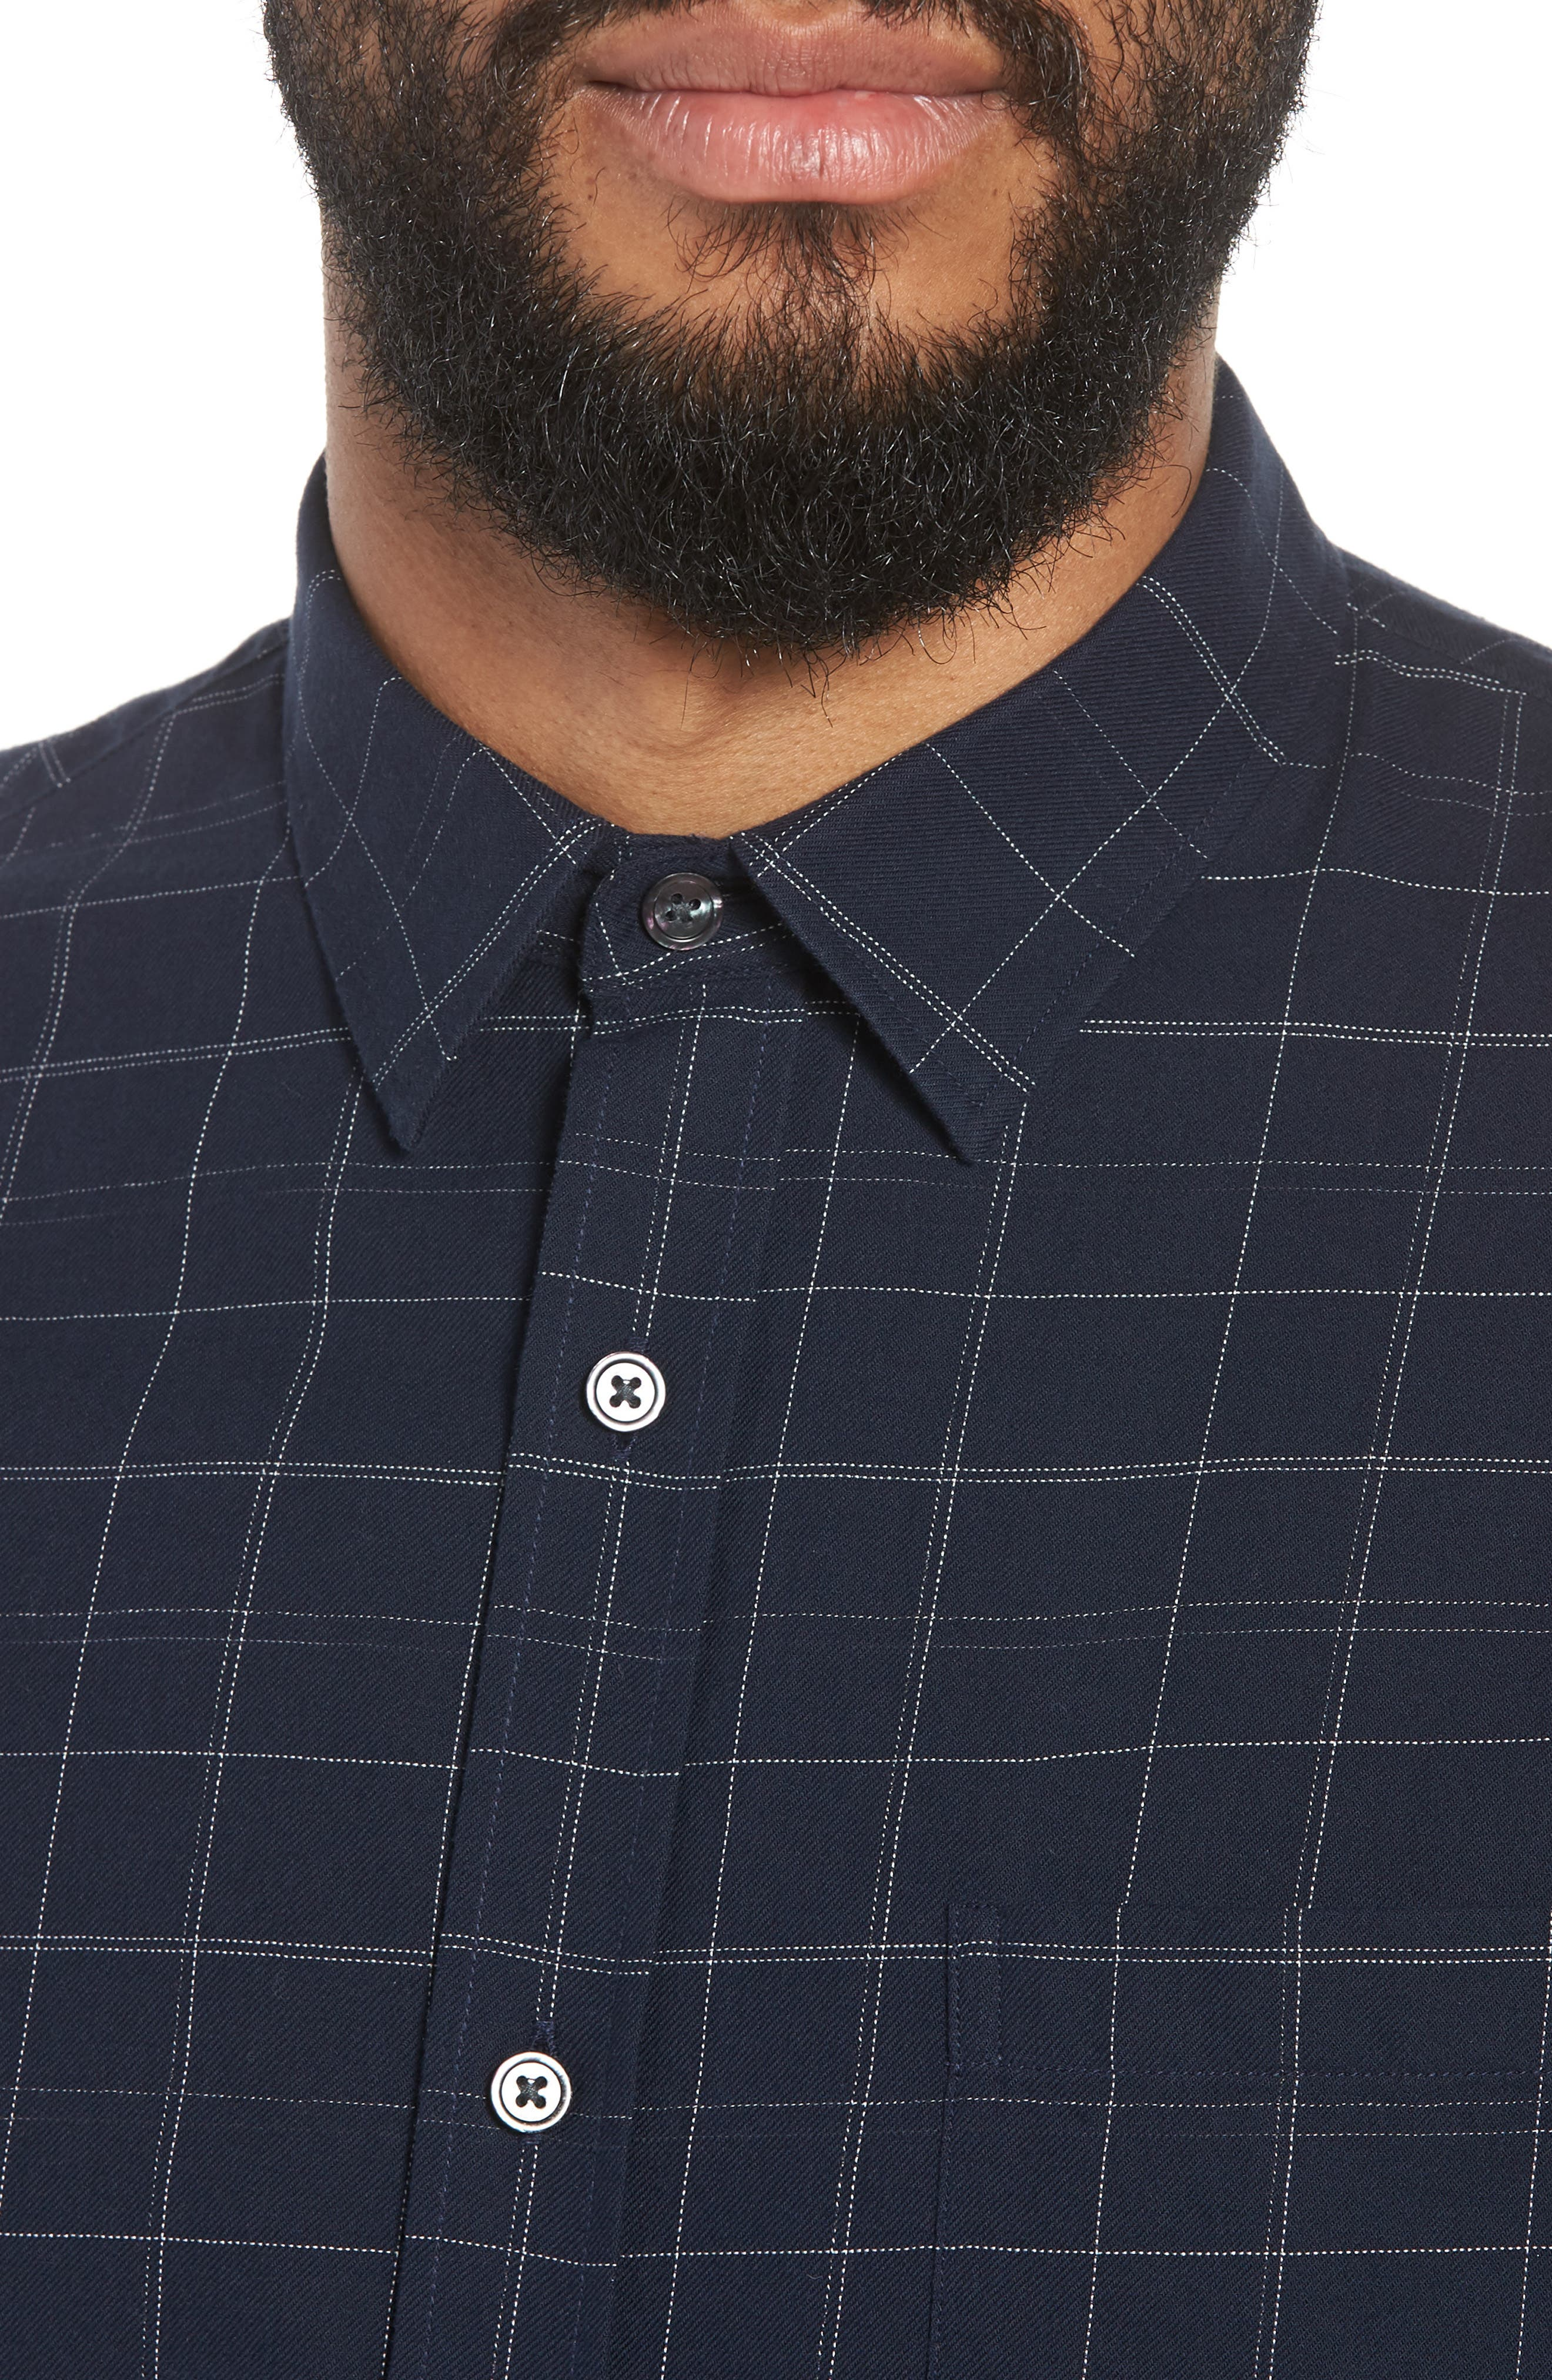 Classic Fit Plaid Sport Shirt,                             Alternate thumbnail 4, color,                             463